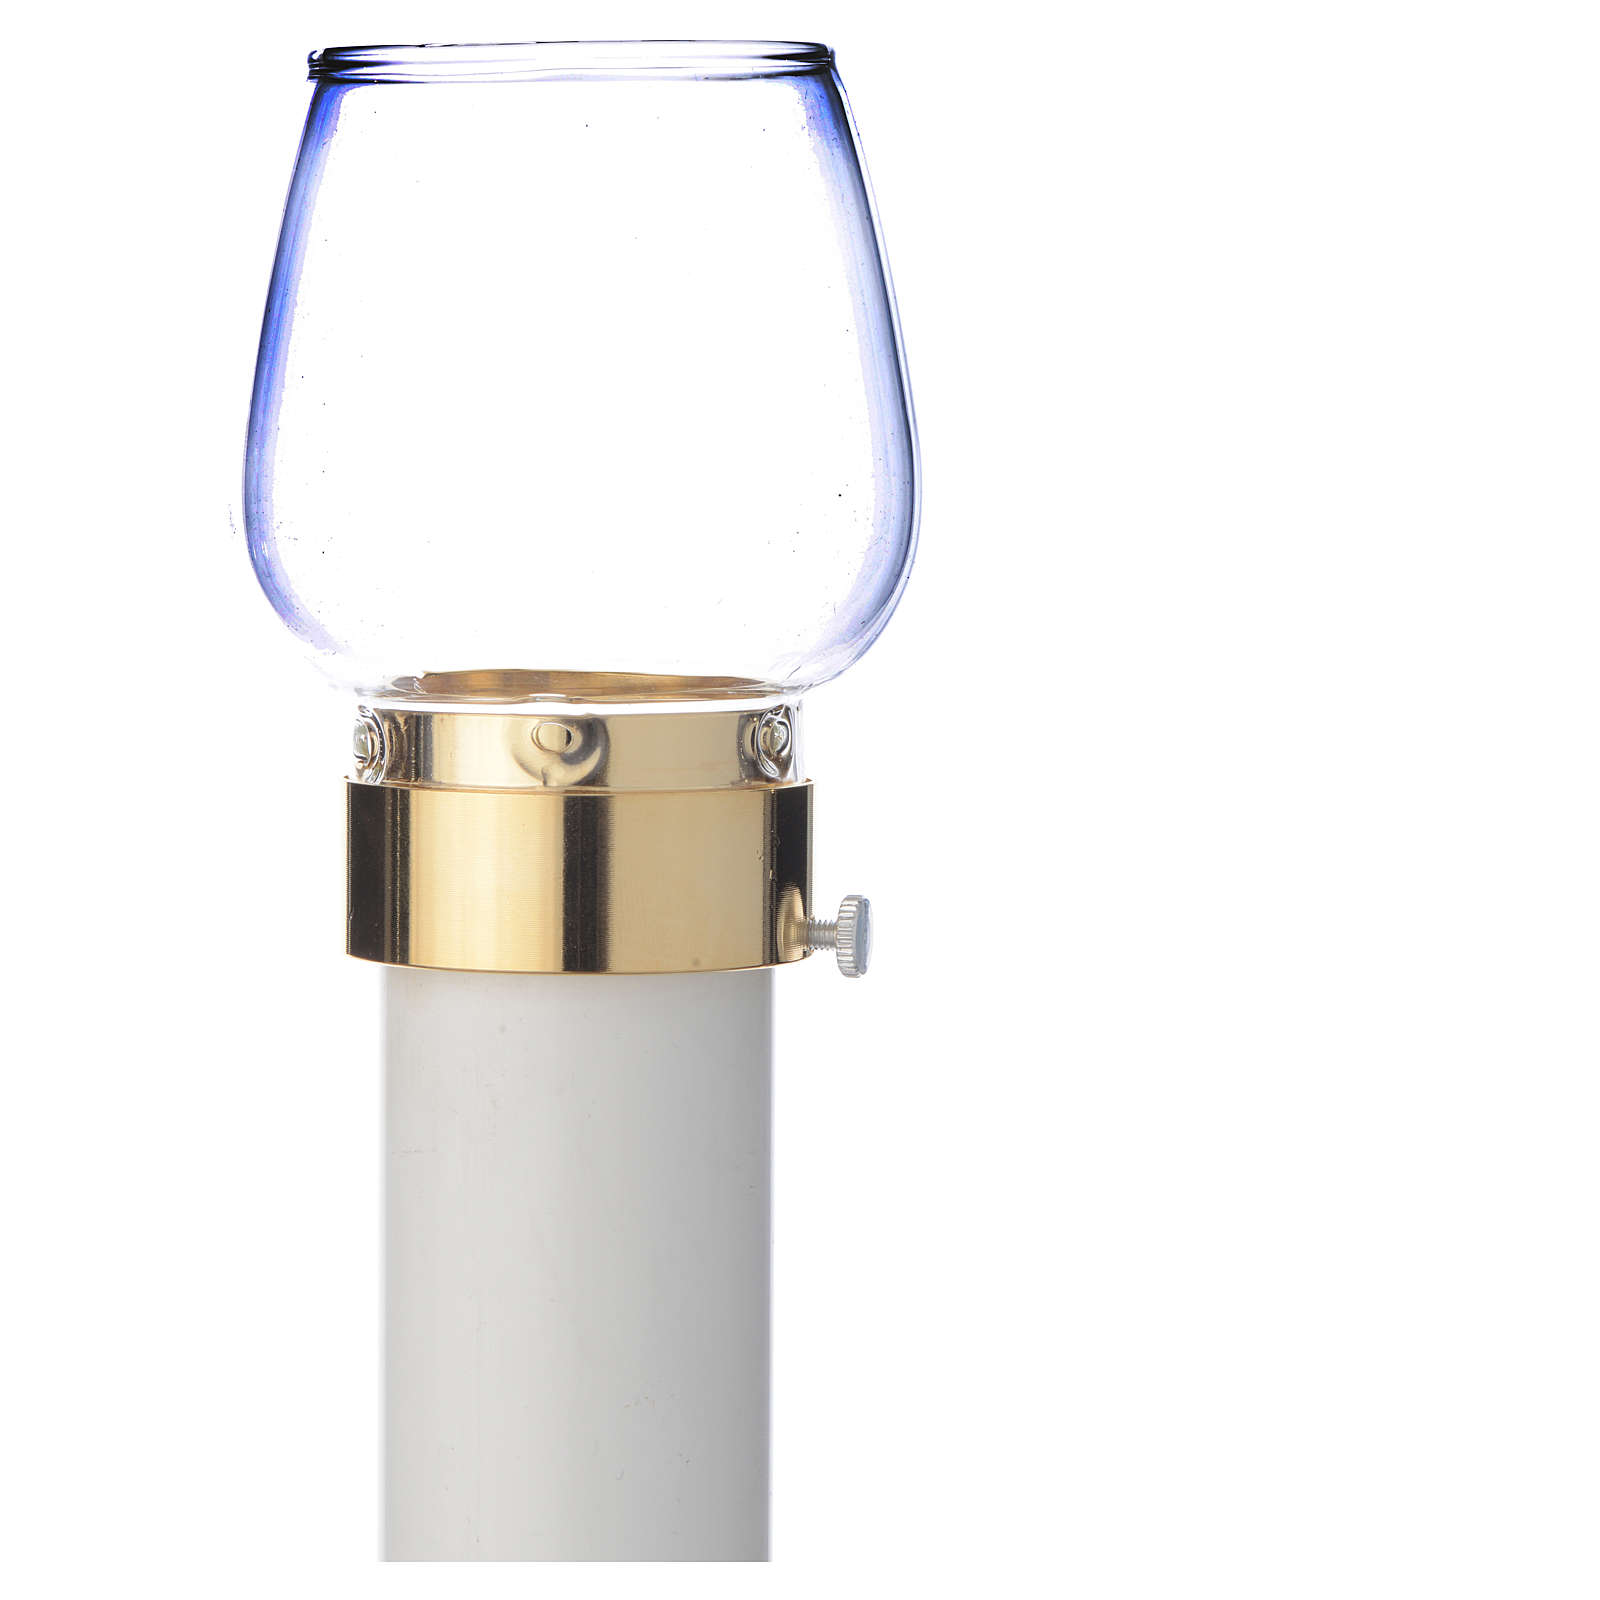 Wind-proof lamp, 100cm tall with golden base, 5cm diameter 3